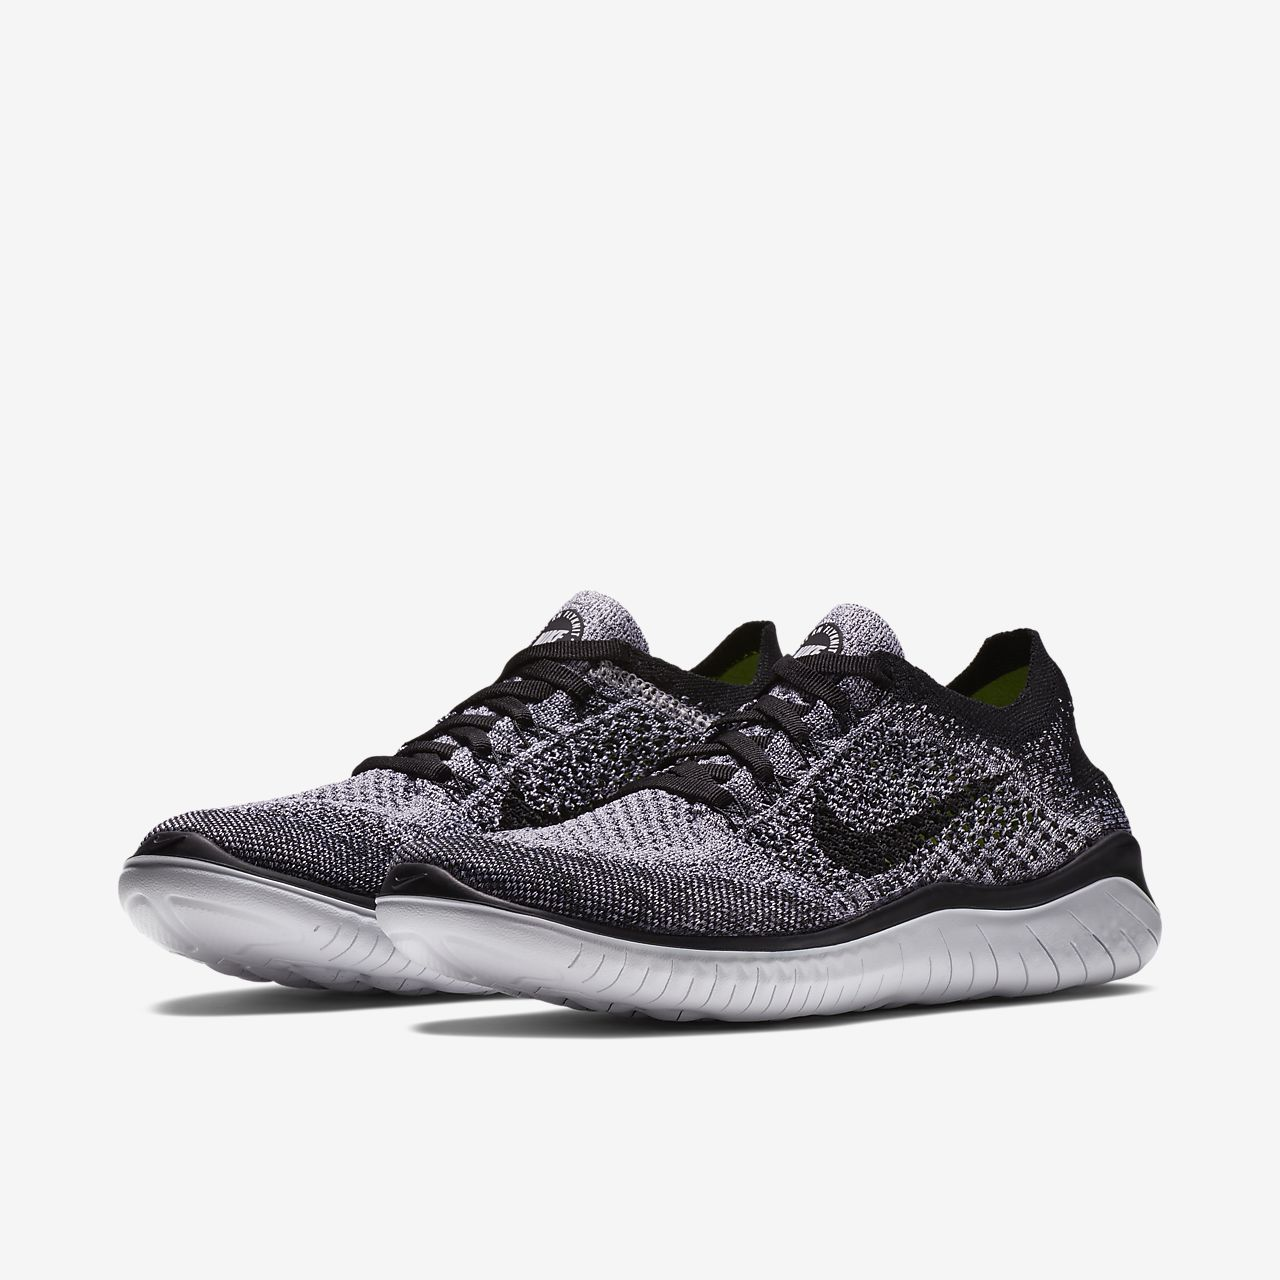 nike free rn women's running shoe